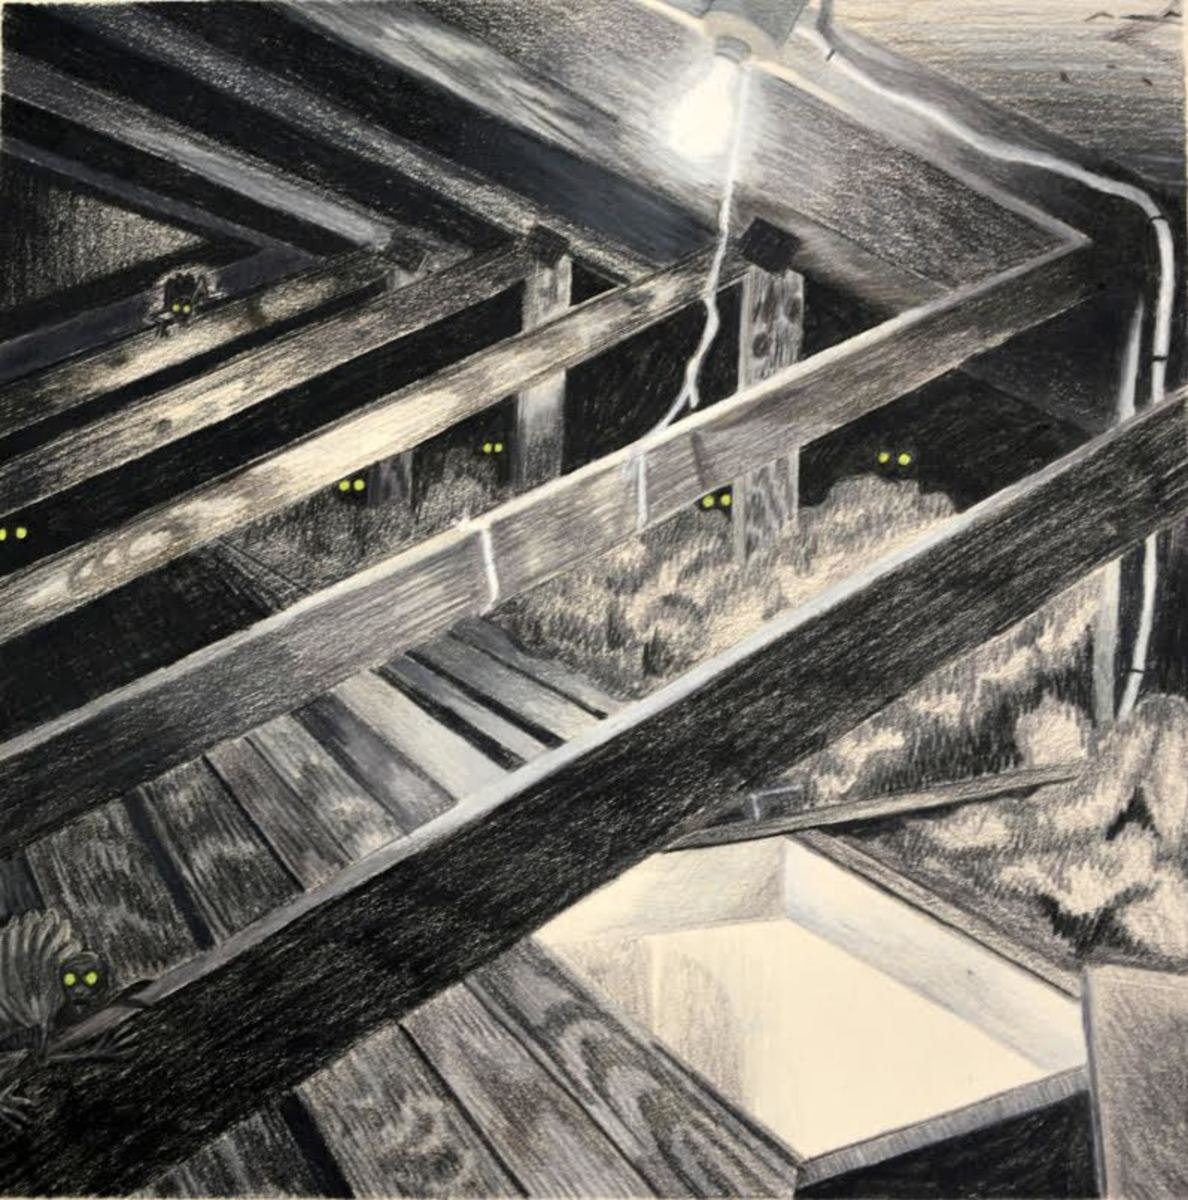 Charcoal drawing done by Moeller.